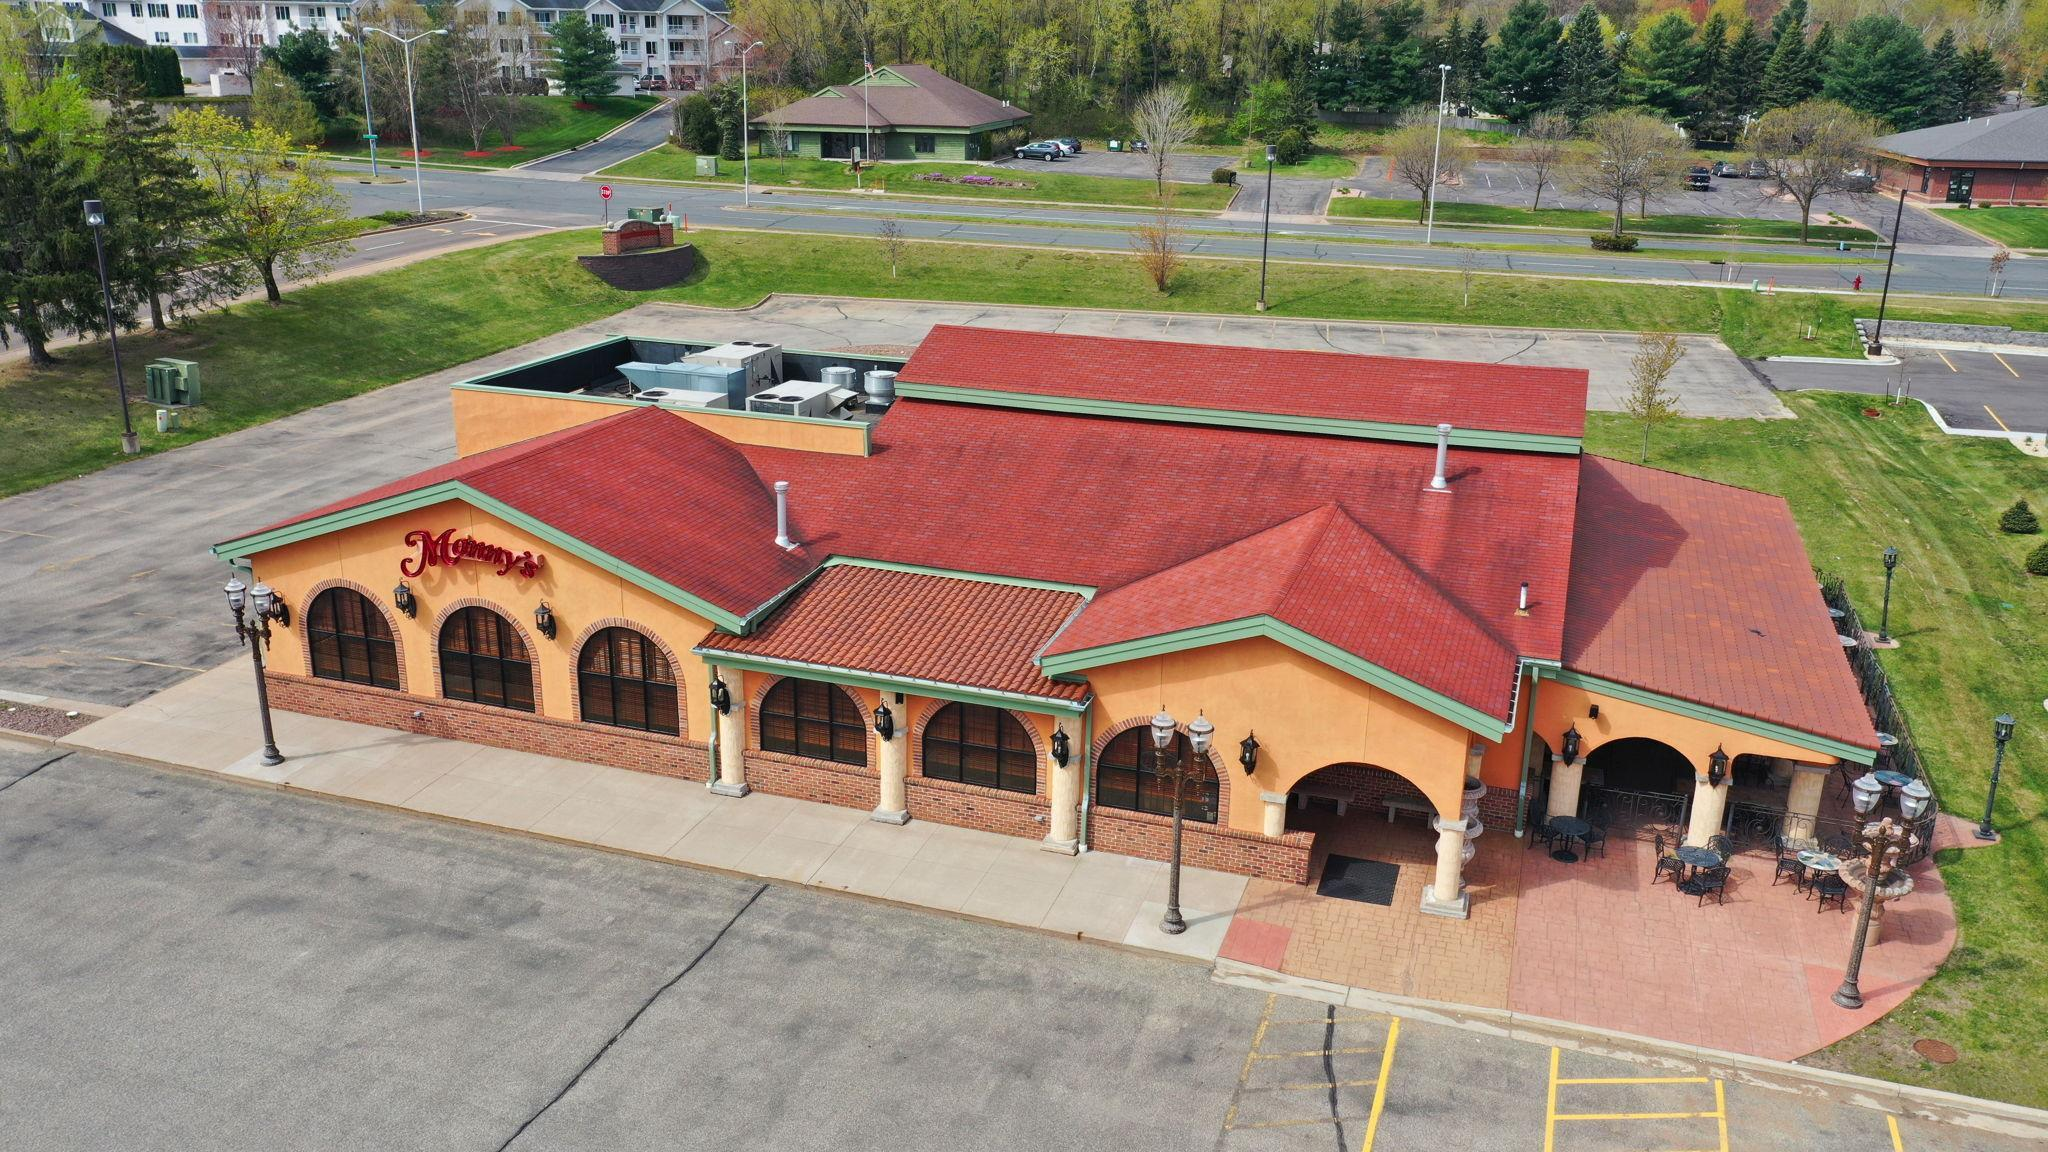 Great investment opportunity! Stunning custom-built restaurant in 2006! Smartly laid out floor plan and beautifully designed Spanish-themed elements throughout with many authentic pieces from Mexico! Dining area seats 154 people, bar area seats 60 people and the wonderful outdoor patio seats 40 people. 101 parking spaces. Sale includes restaurant equipment.